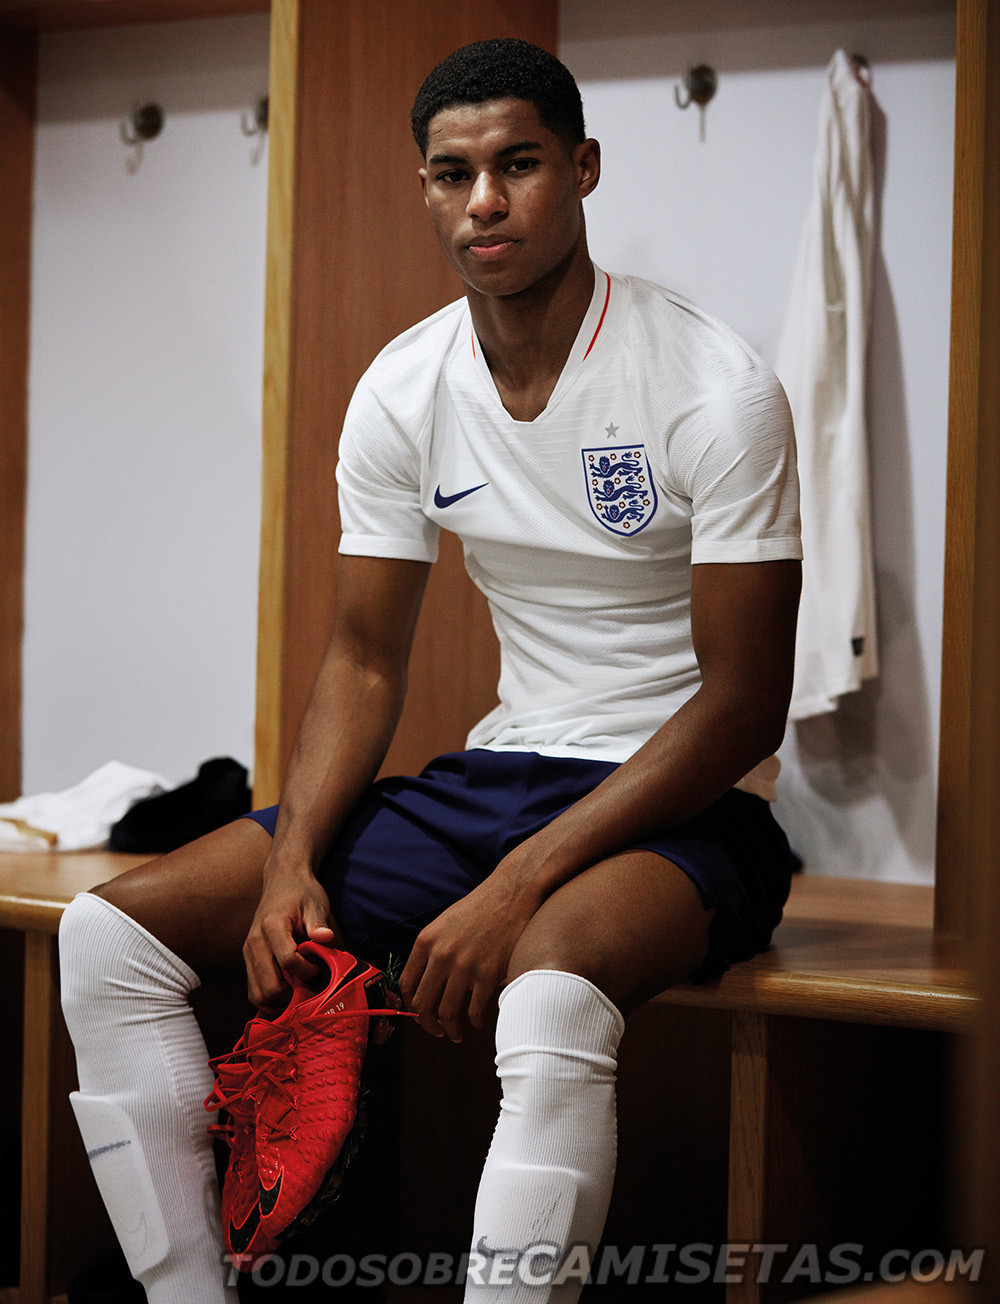 england-2018-world-cup-kits-nike-11.jpg